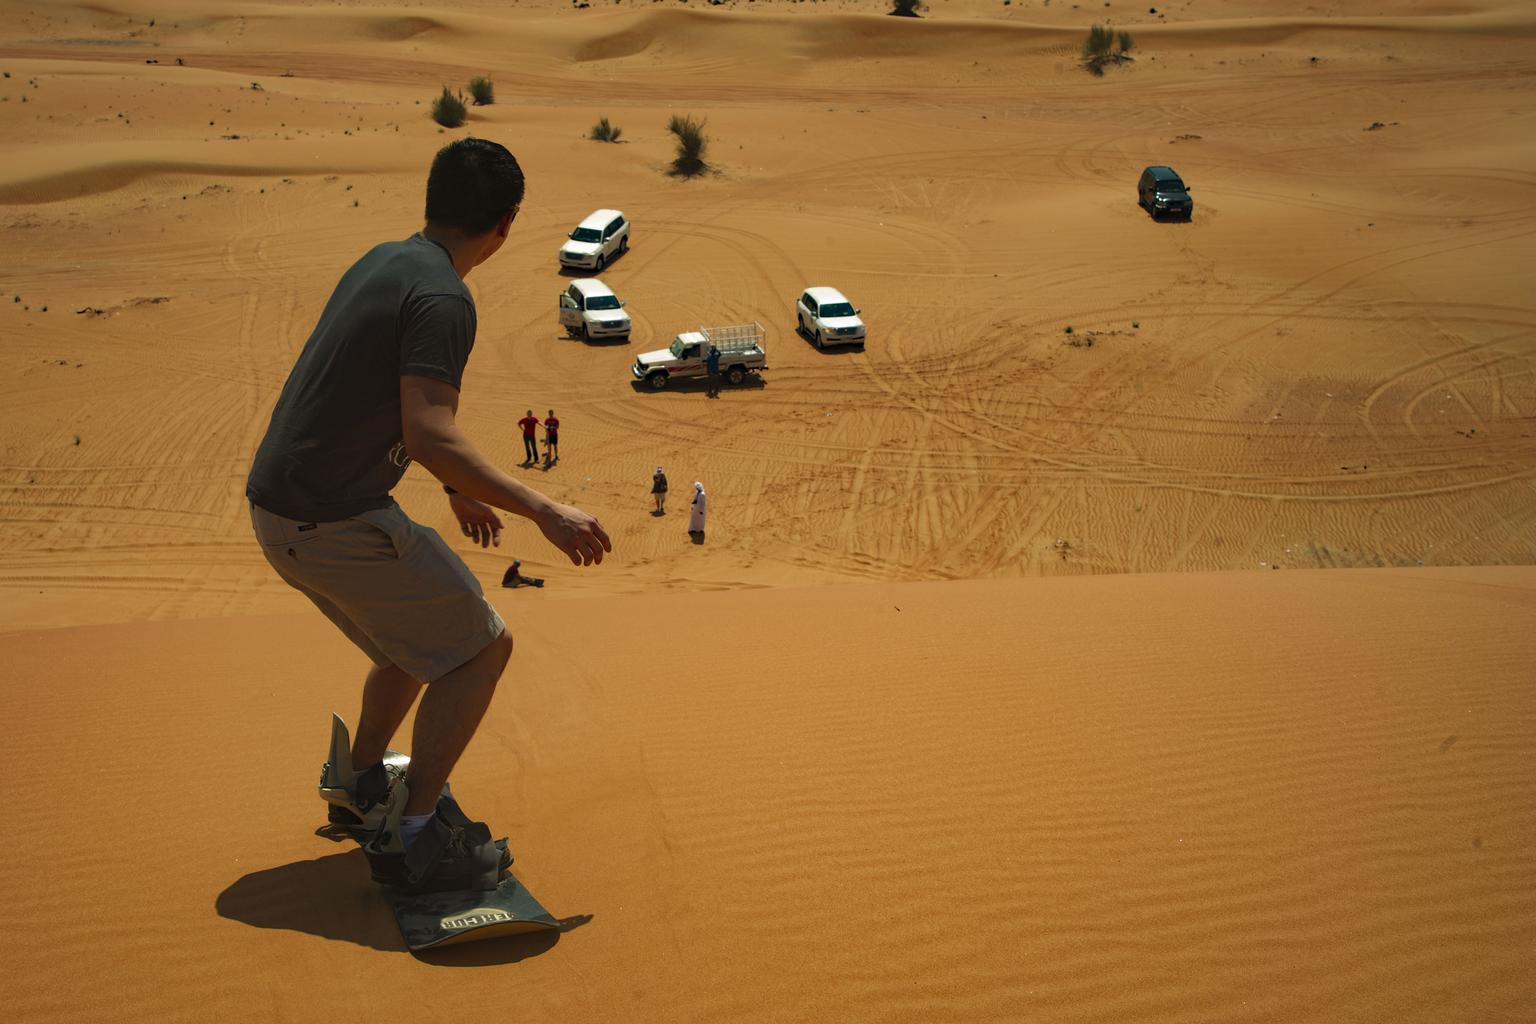 A Desert Safari in the Dubai Desert – Warm Fun Adventures!